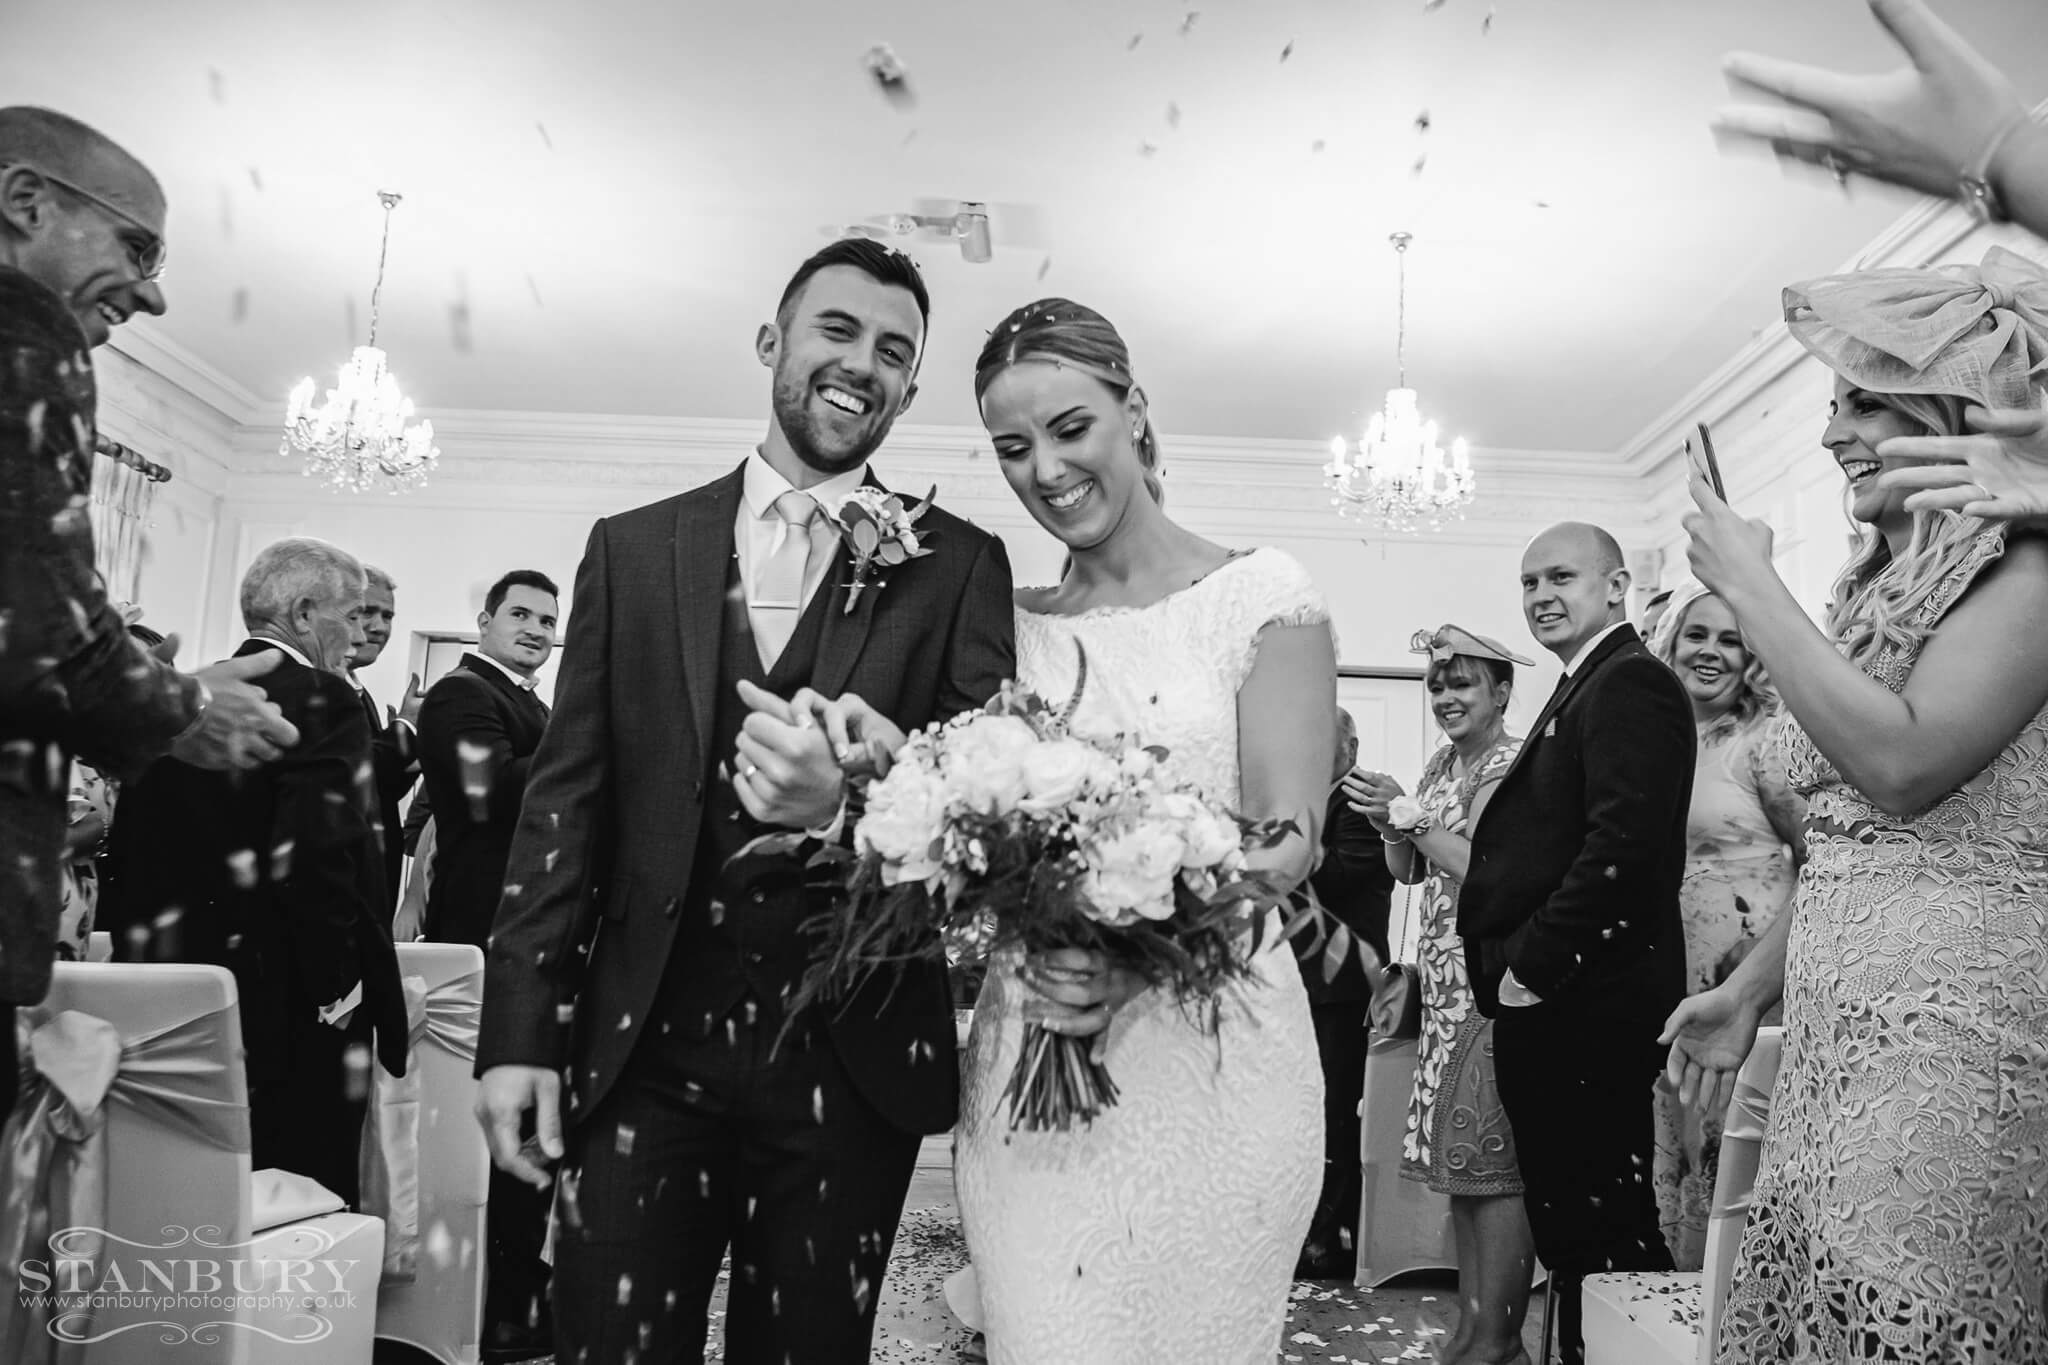 natural-documentary-wedding-photographers-stanbury-photography